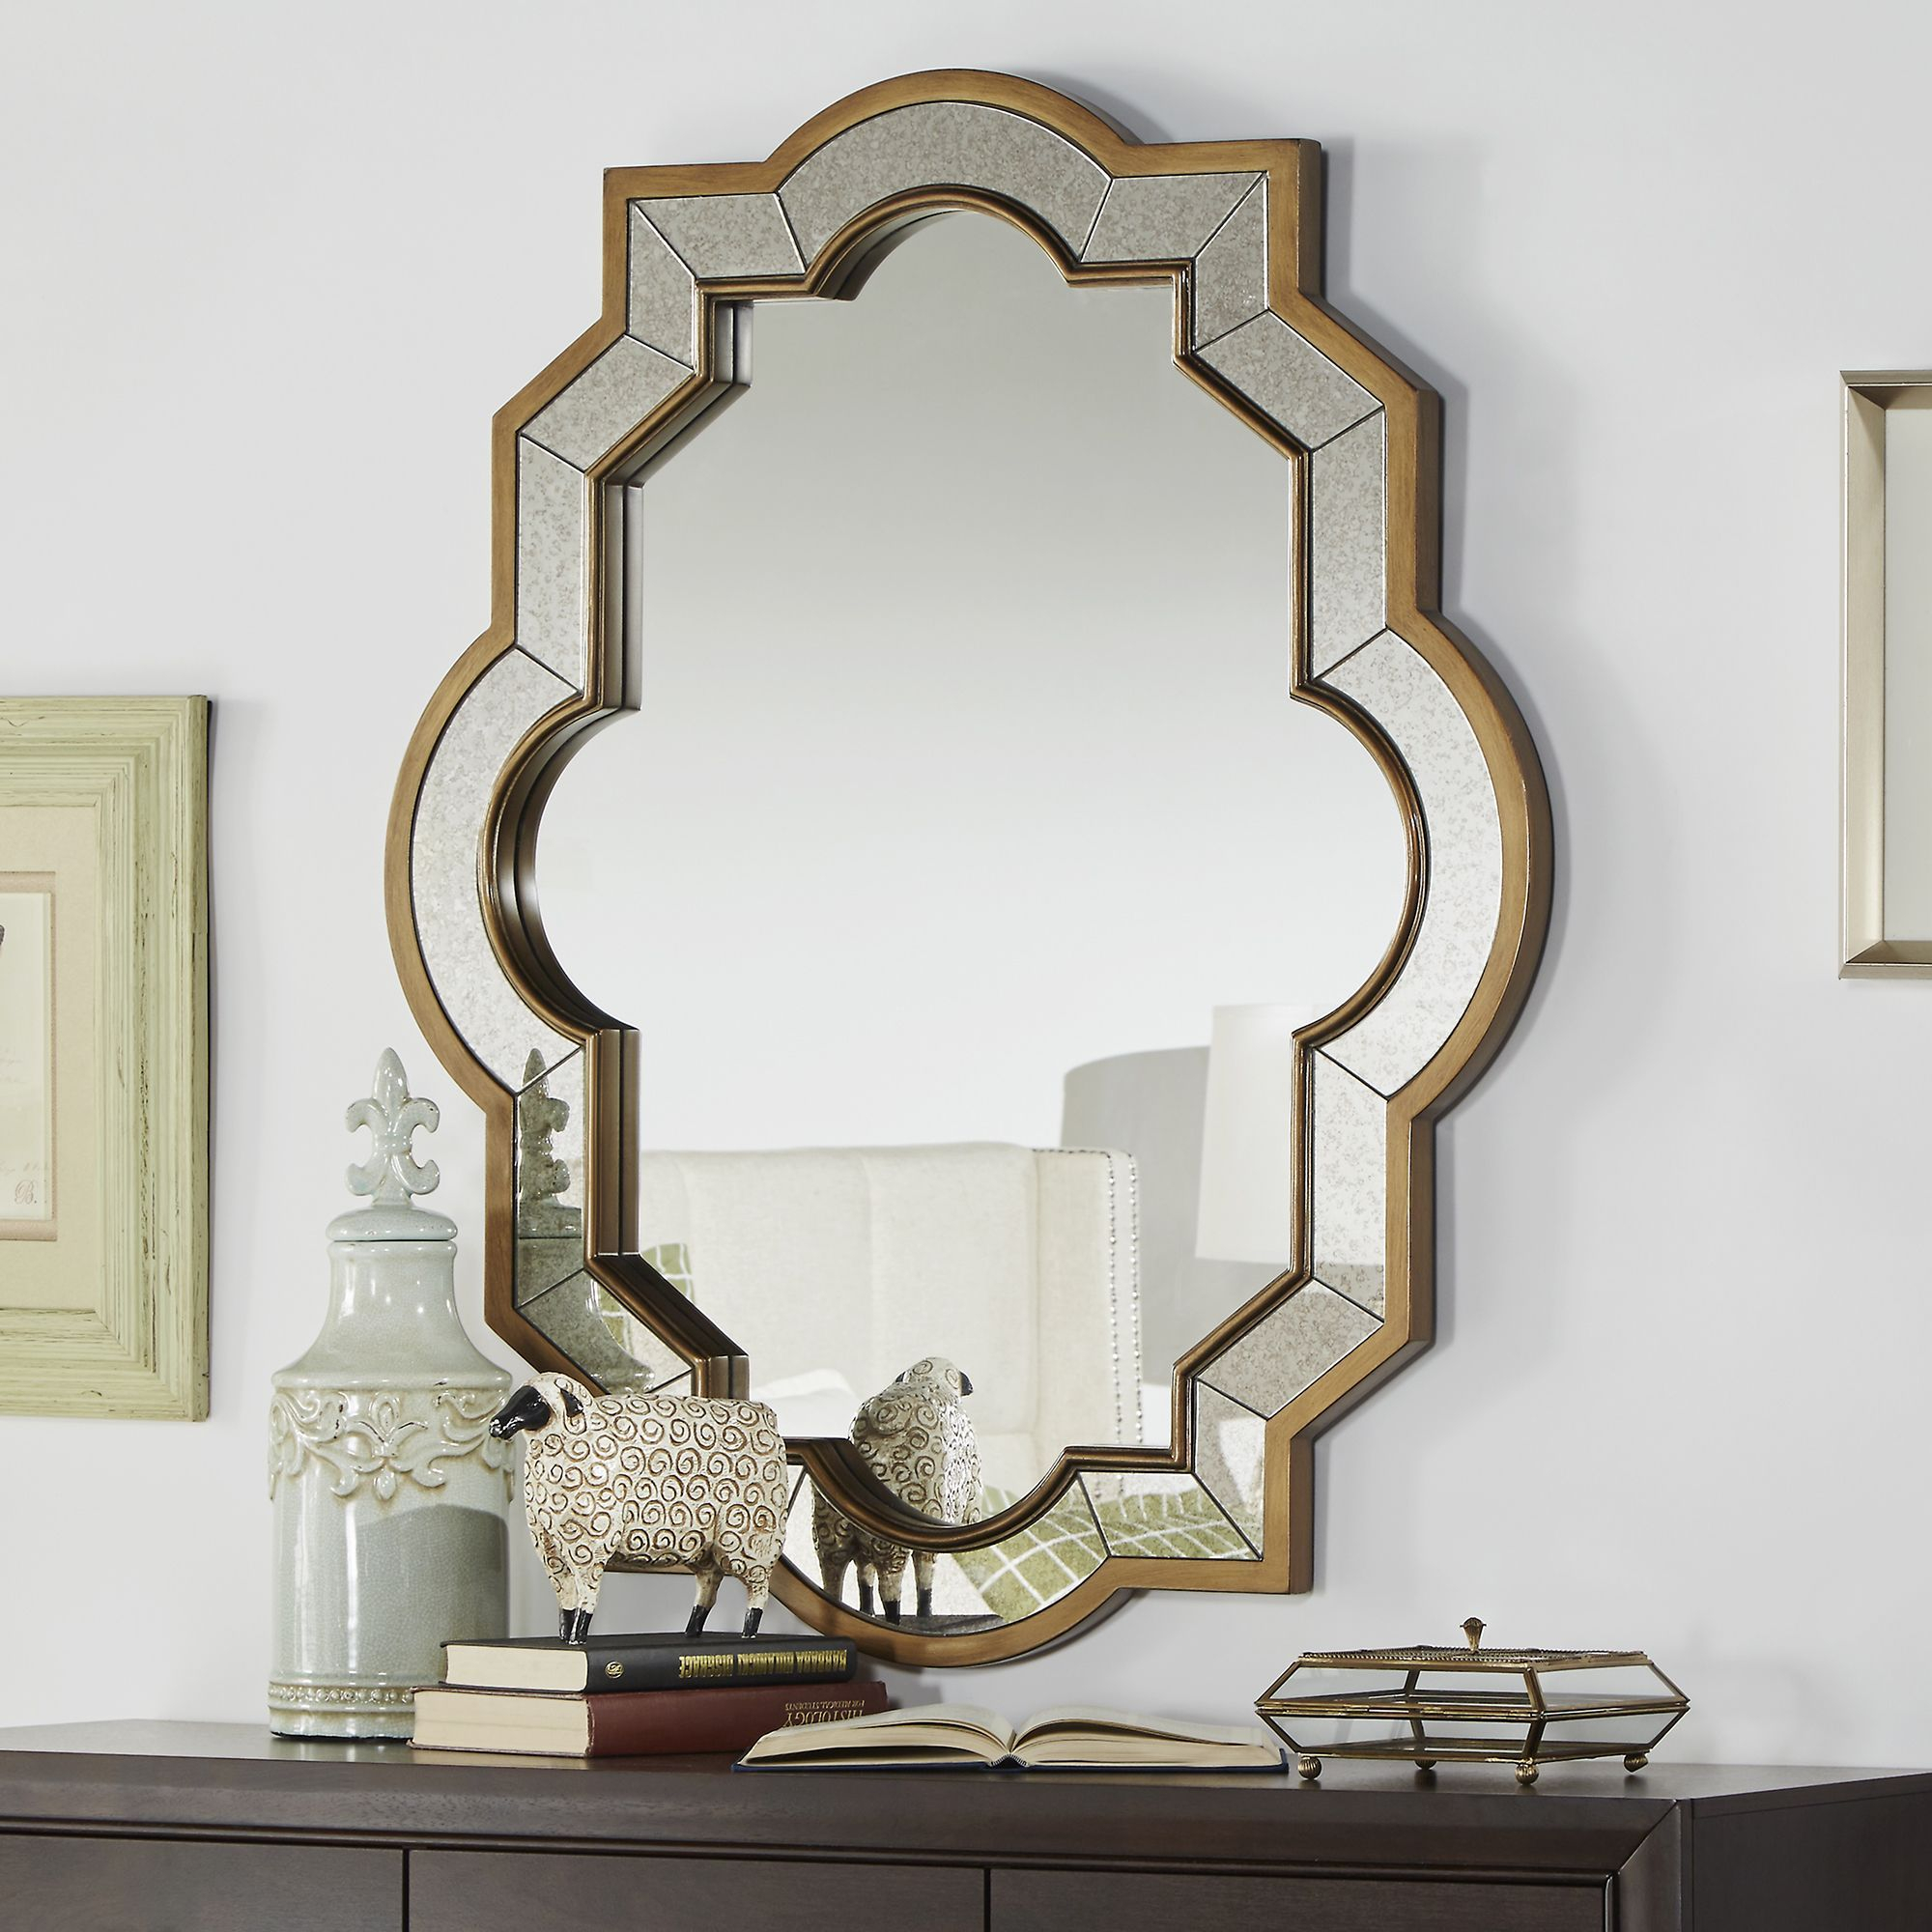 This Decorative Wall Mirror Provides Both Functionality And With Regard To Broadmeadow Glam Accent Wall Mirrors (View 8 of 20)